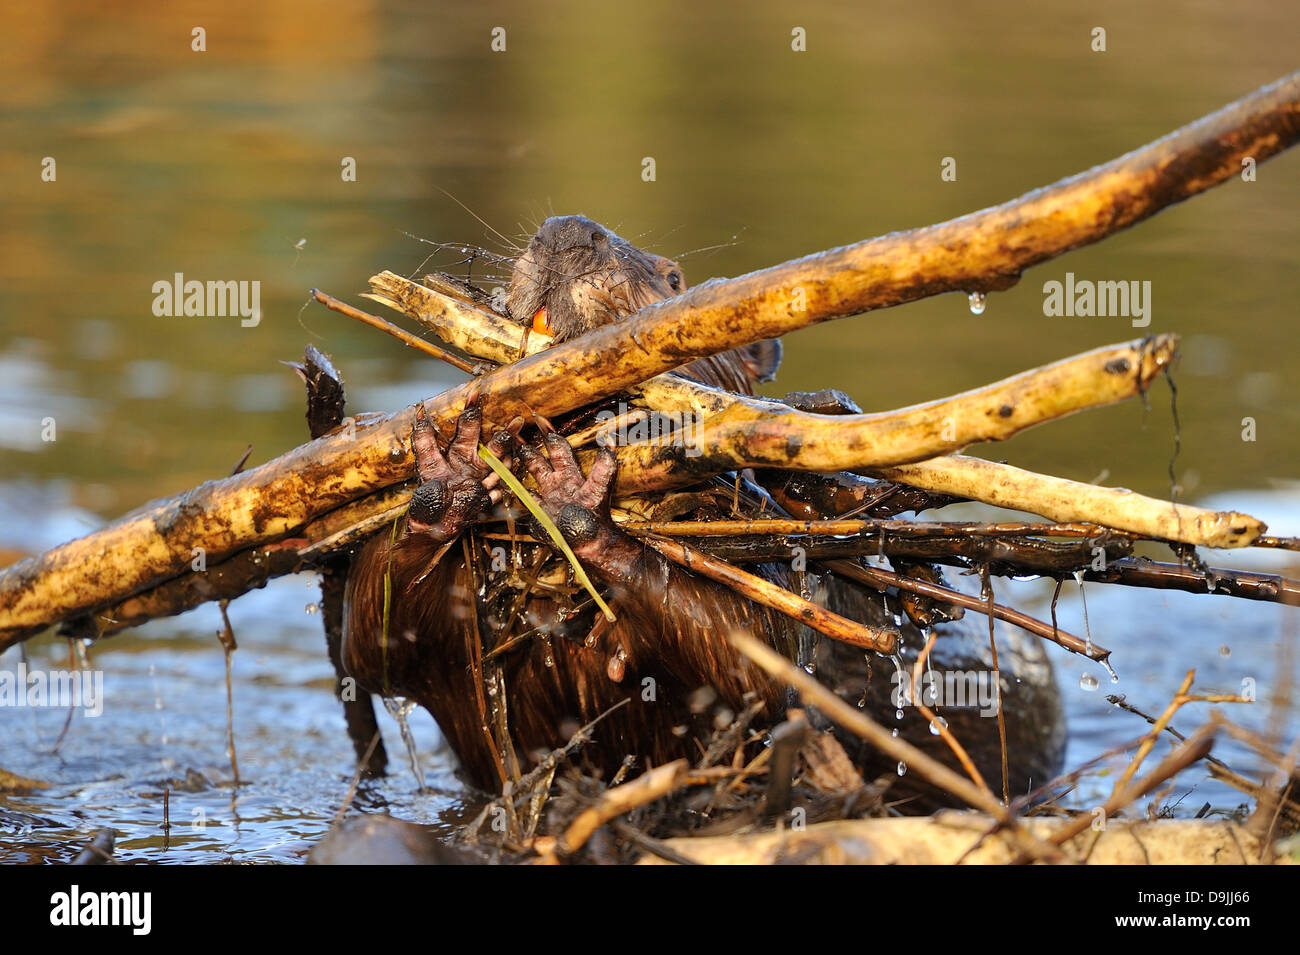 An adult beaver caring a big load of sticks to plug a hole in the beaver dam - Stock Image